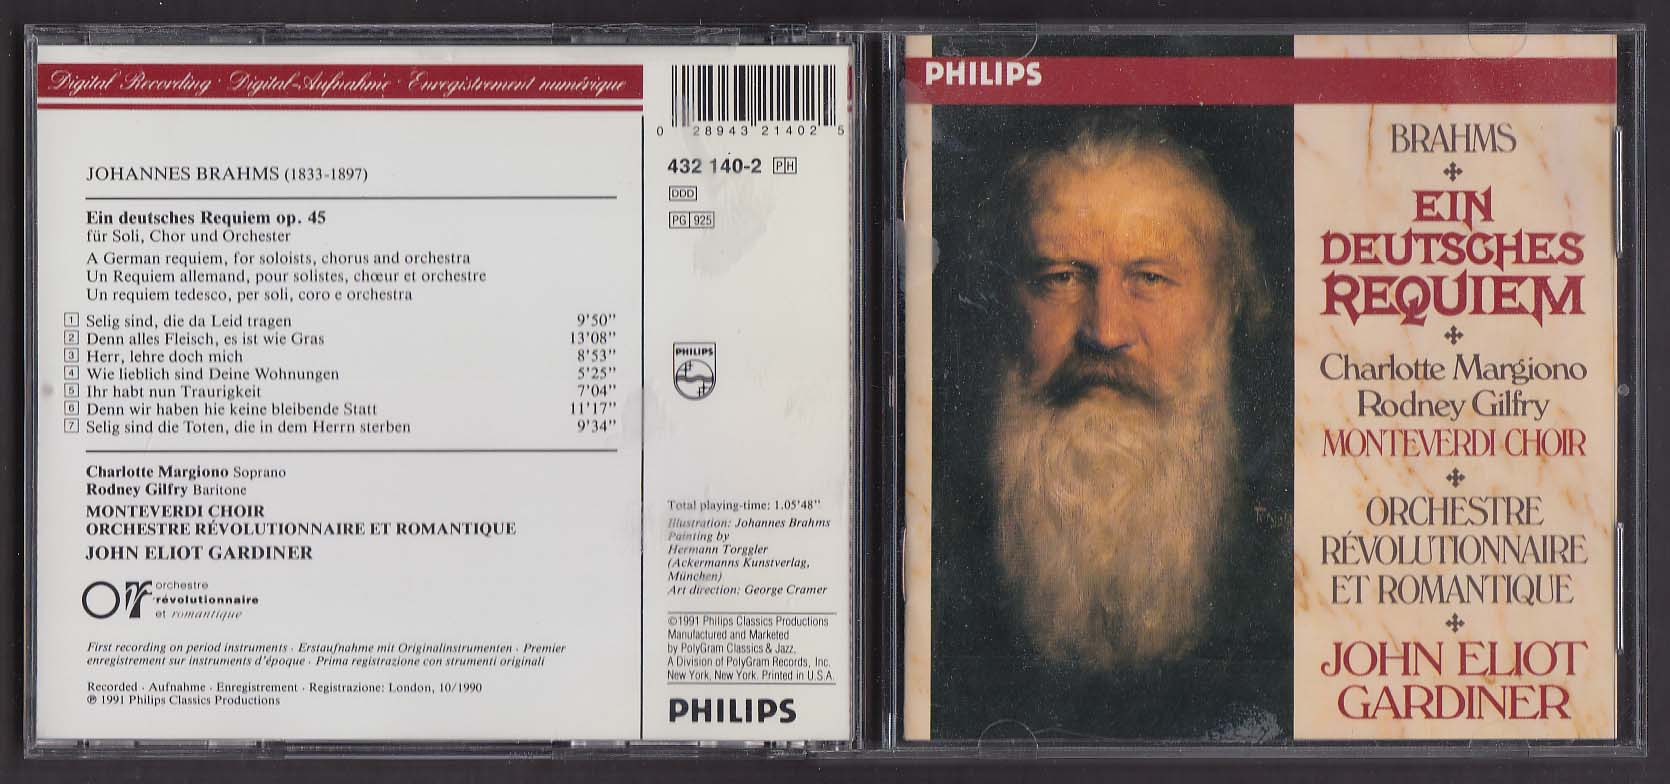 Image for Brahms Ein Deitsches Requiem John Eliot Gardiner Philips CD 1991